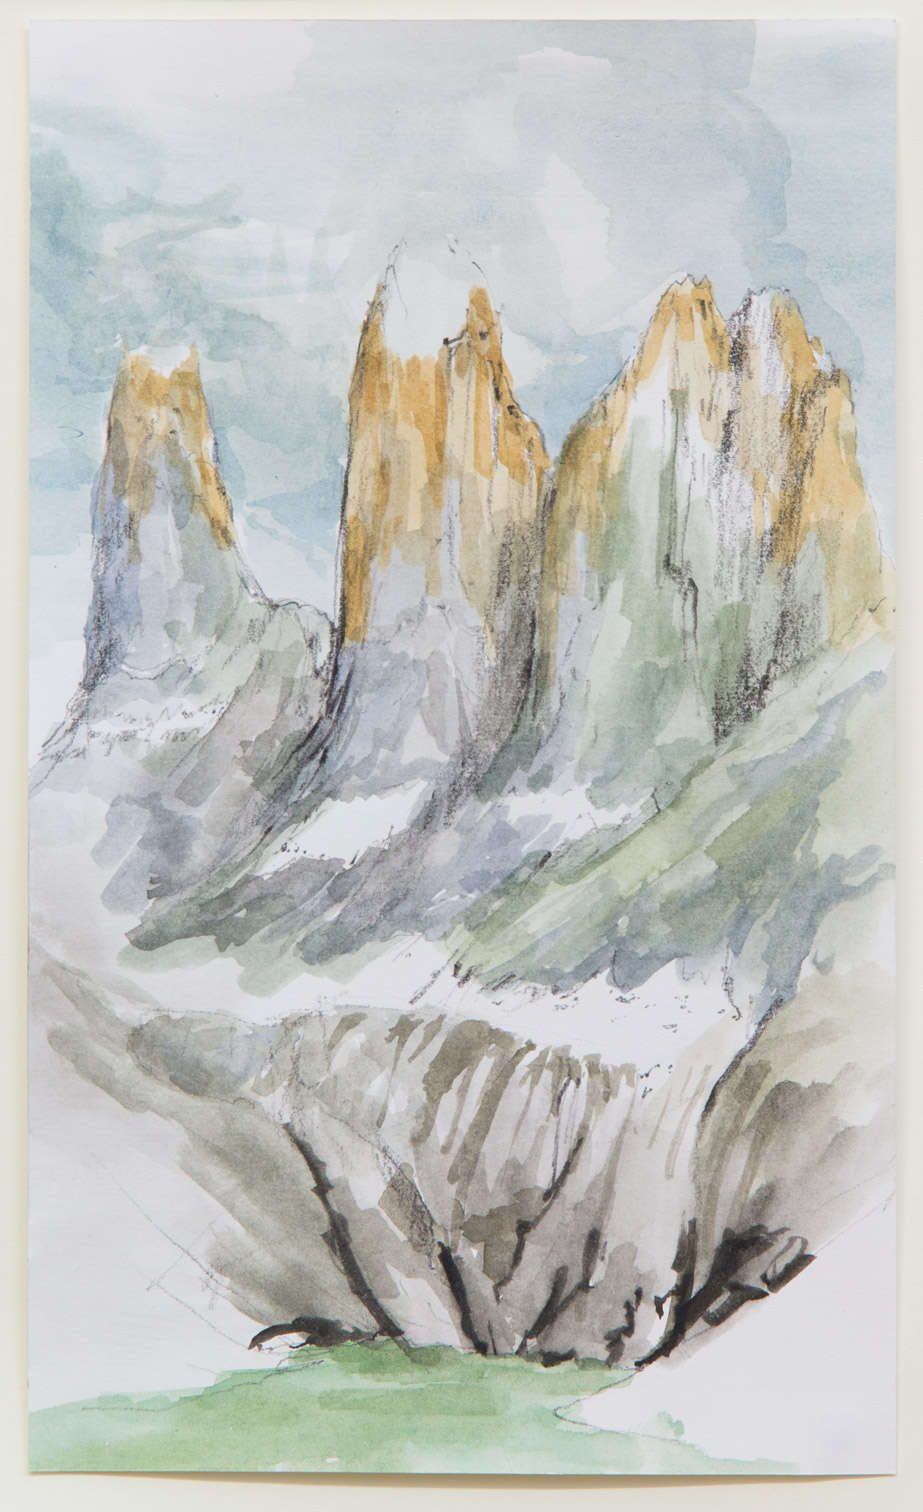 Torres del Paine; 28 x 21 cm; watercolour, ink and pencil on paper; 2018